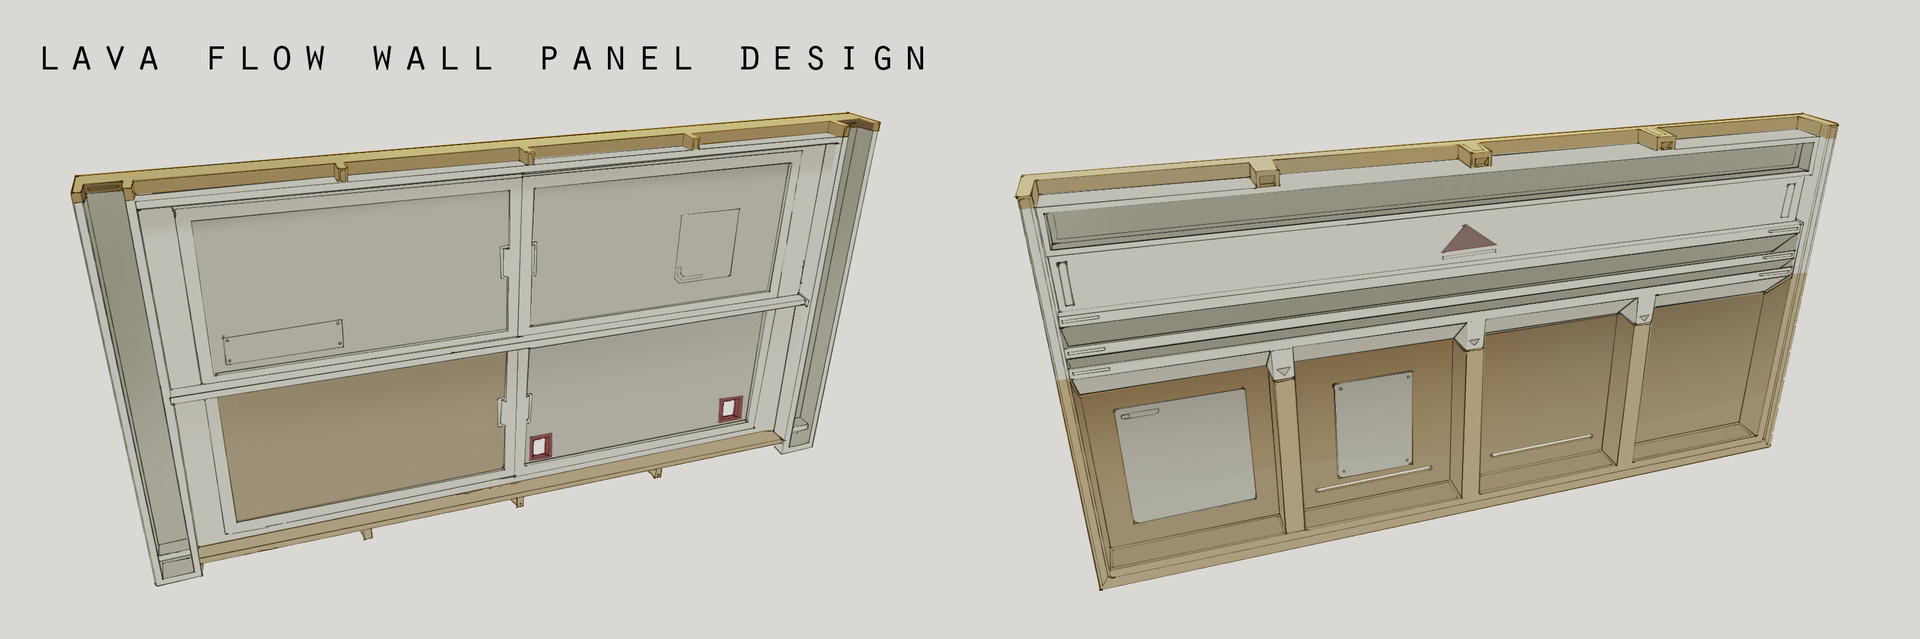 Franklin chan lava flow wall panel design layout